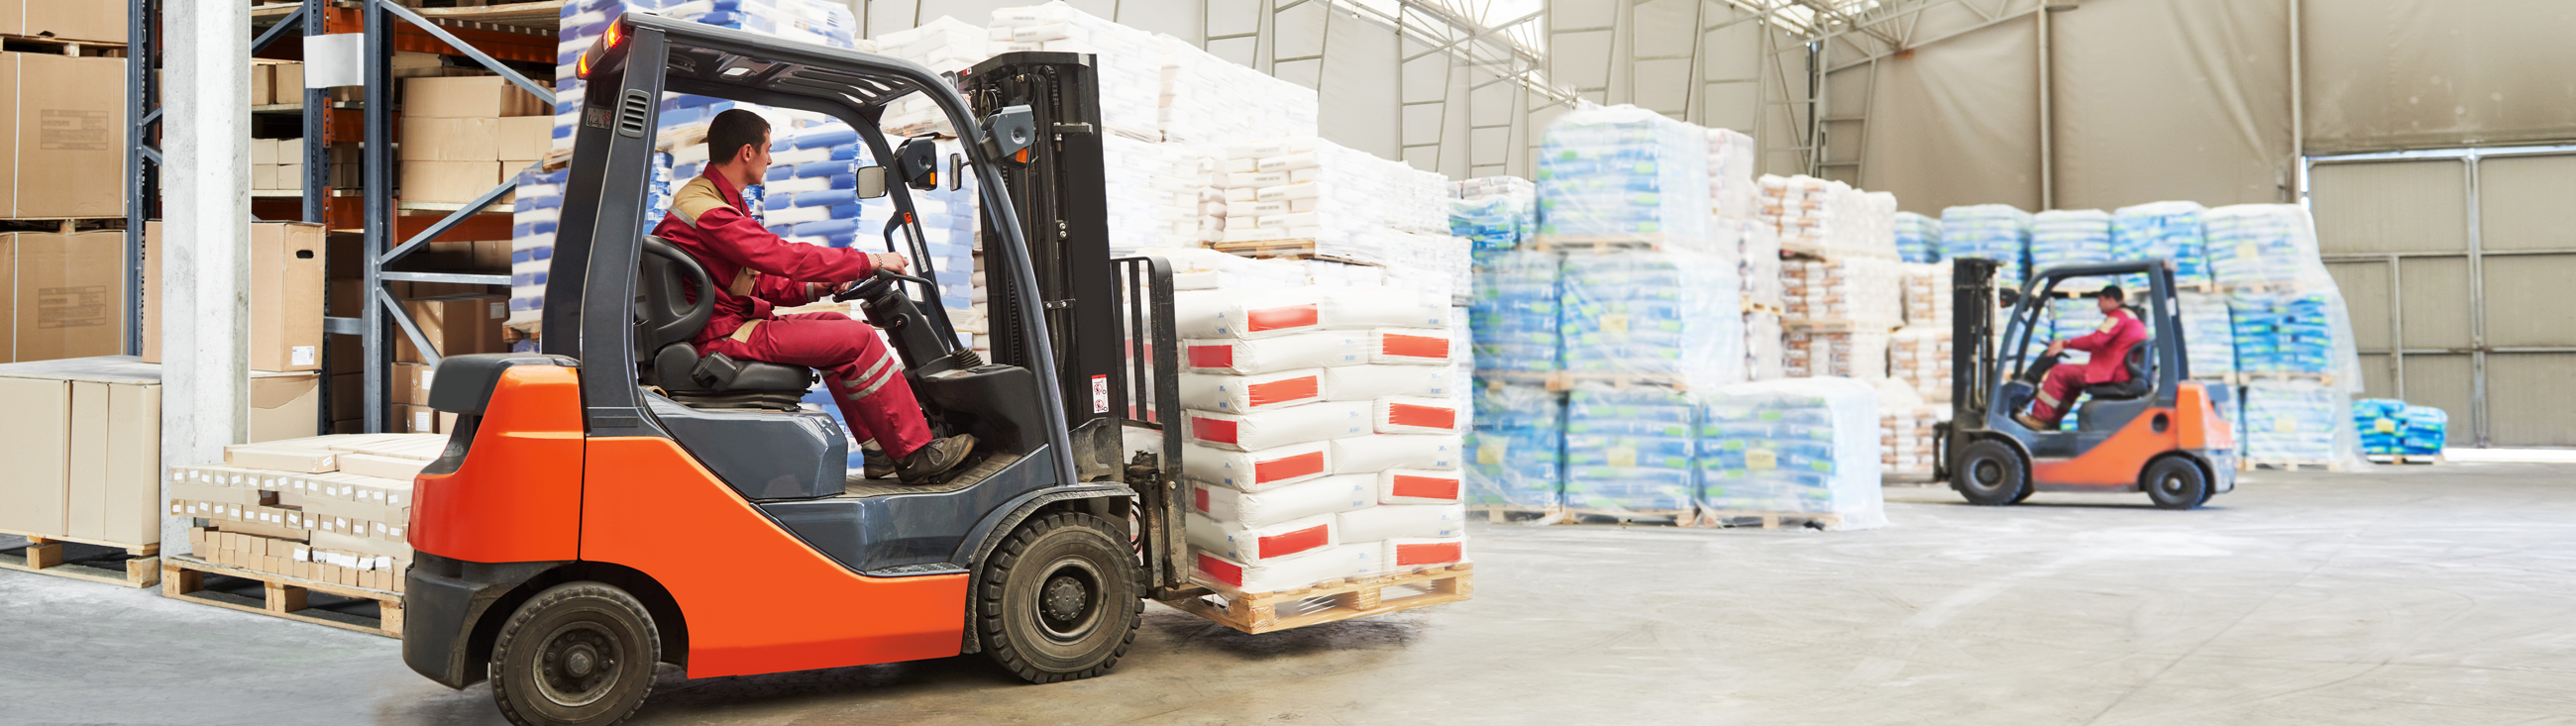 fork lift truck hire and purchase from gloucester fork lift trucks